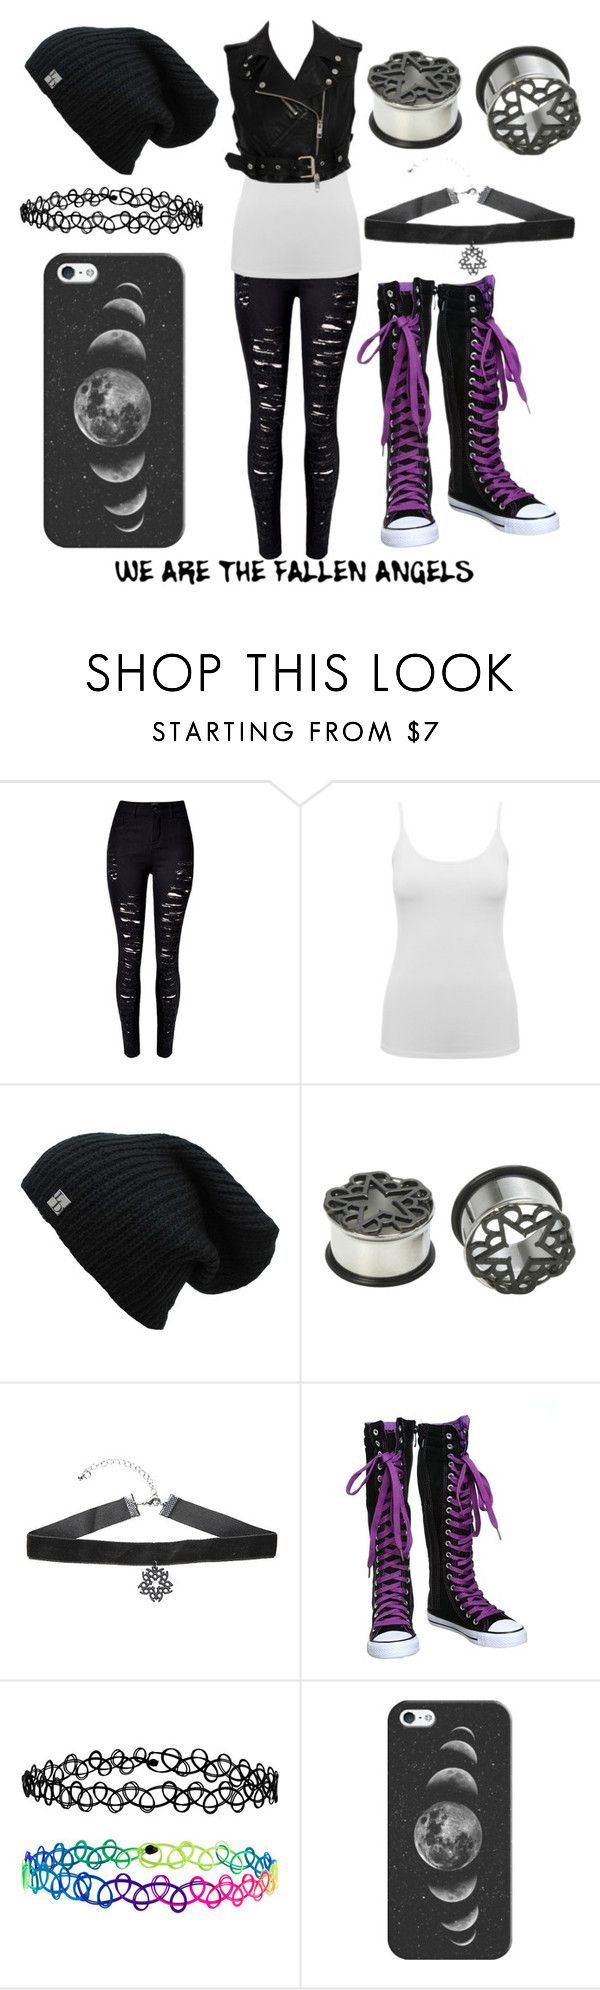 """""""Black Veil Brides"""" by the-uninportant-emo ❤ liked on Polyvore featuring M&Co, Accessorize, Casetify and BVB"""